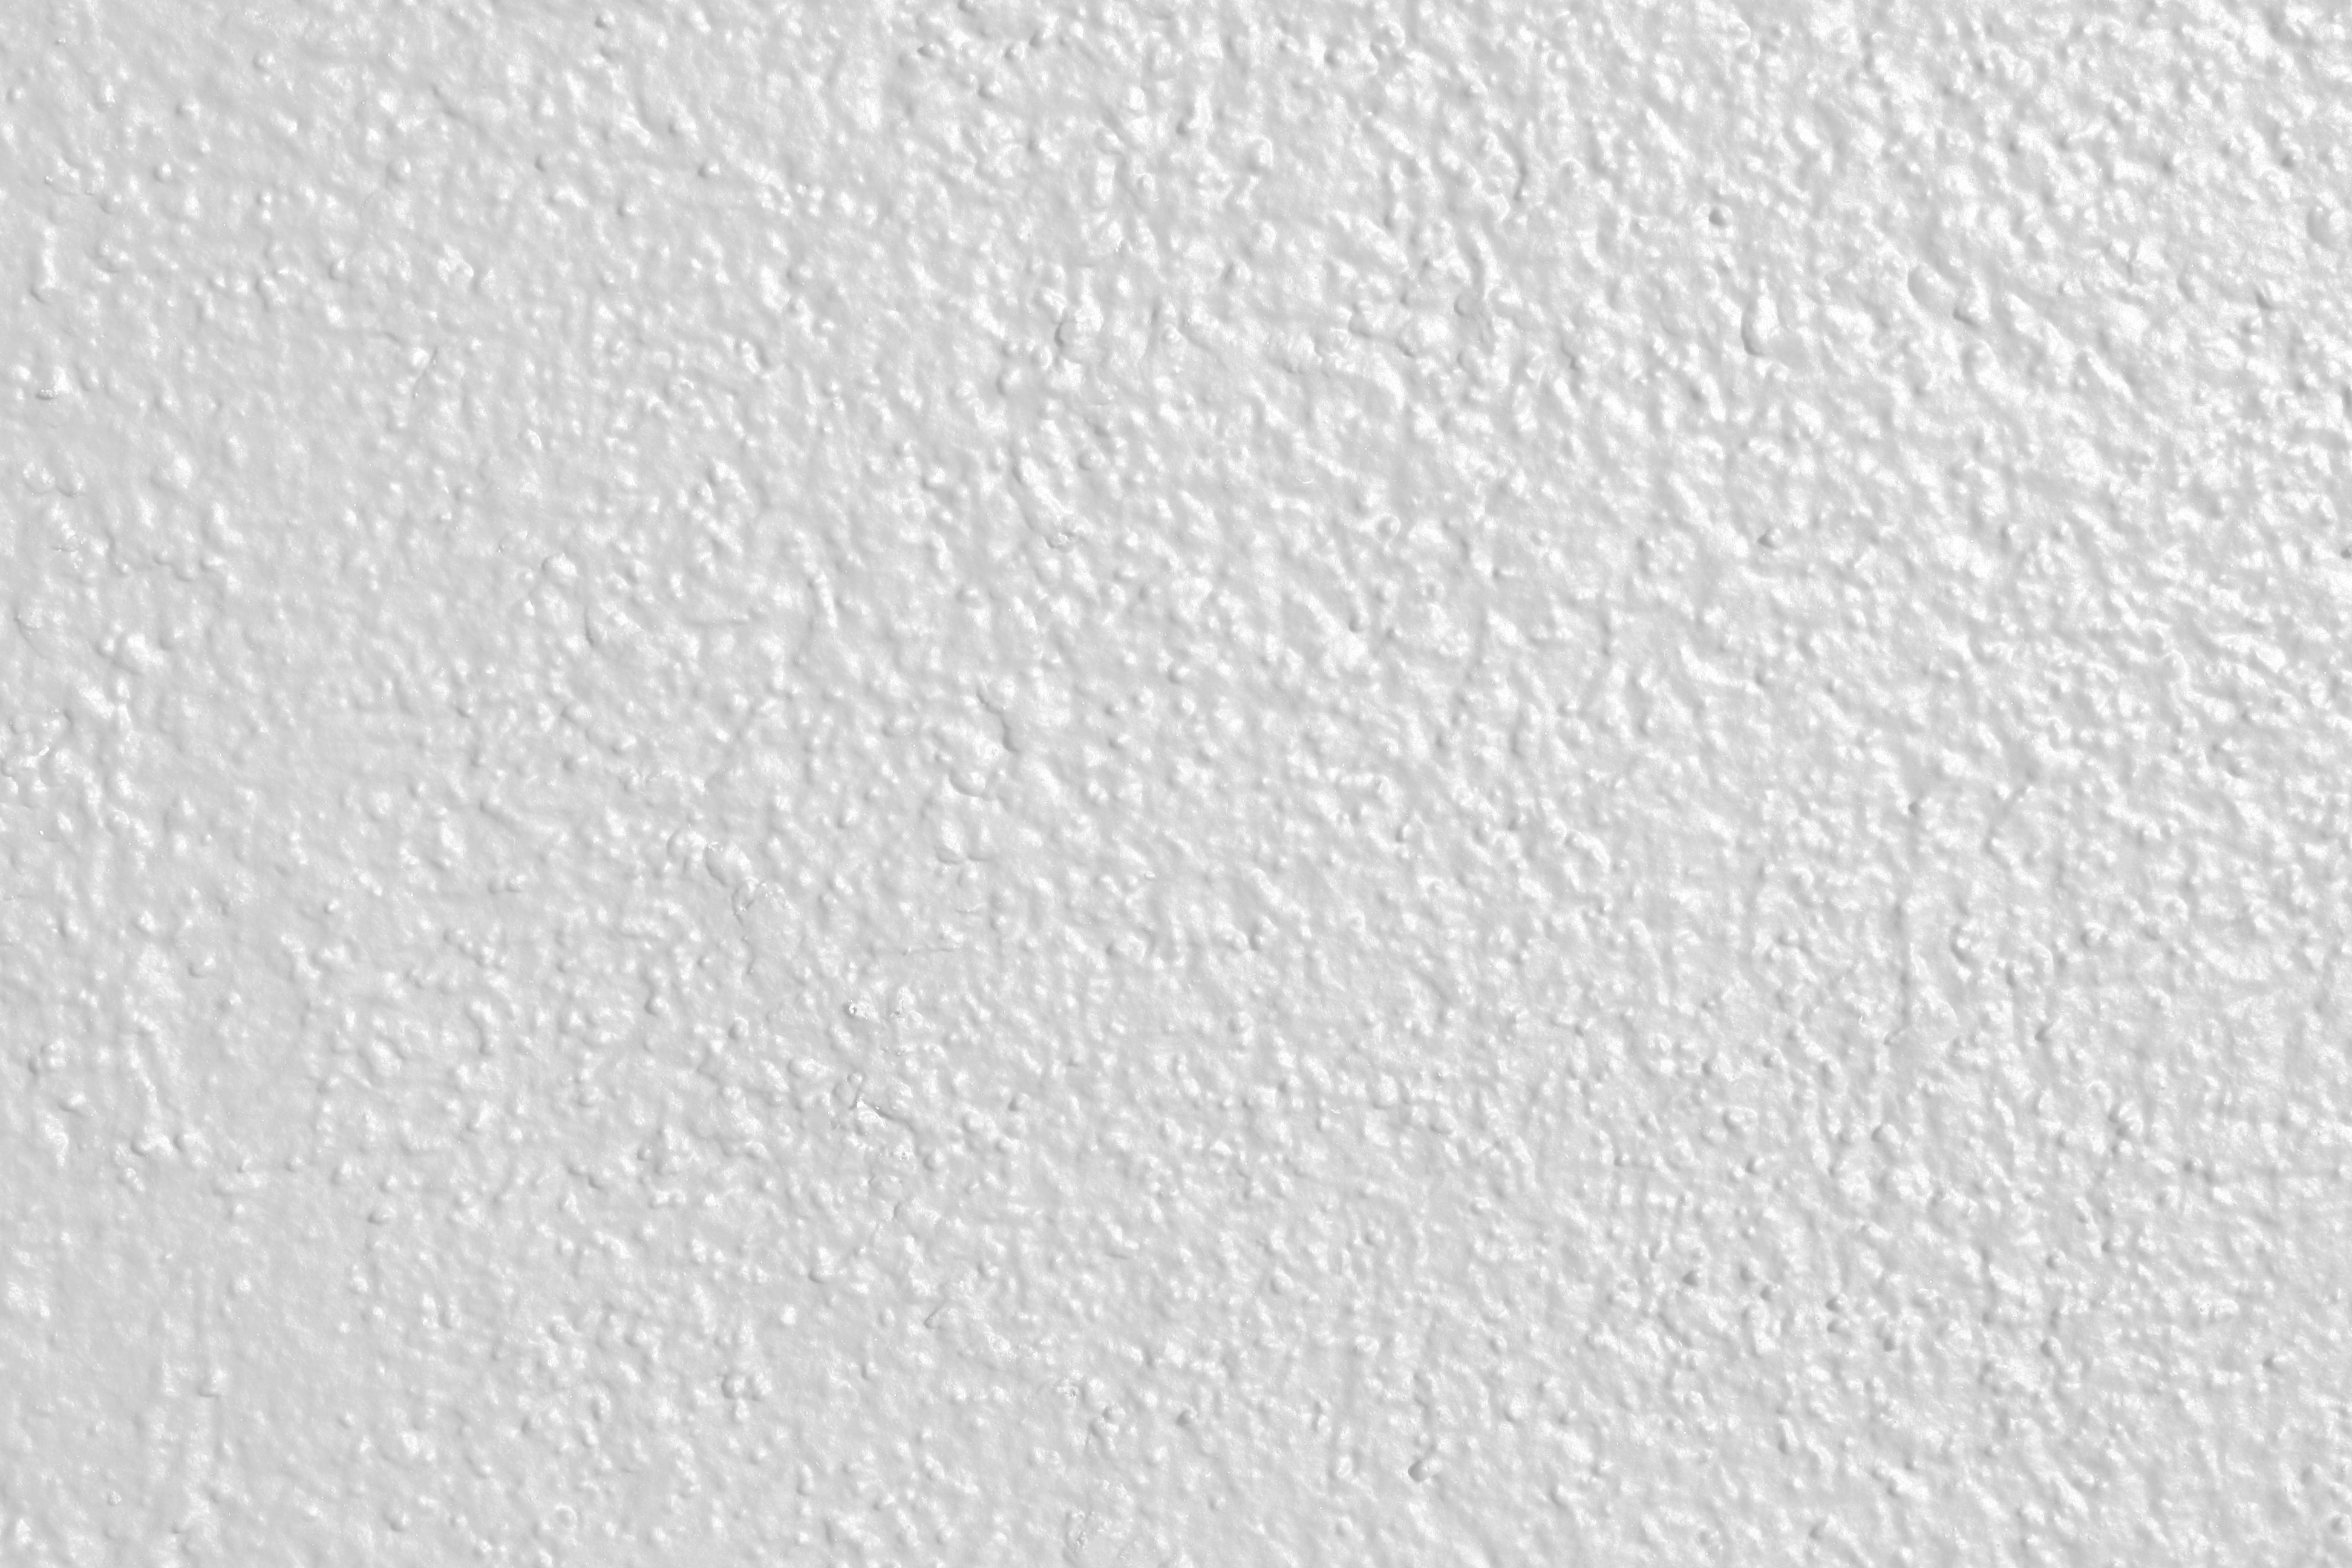 White Painted Wall Texture Picture Free Photograph Photos Public